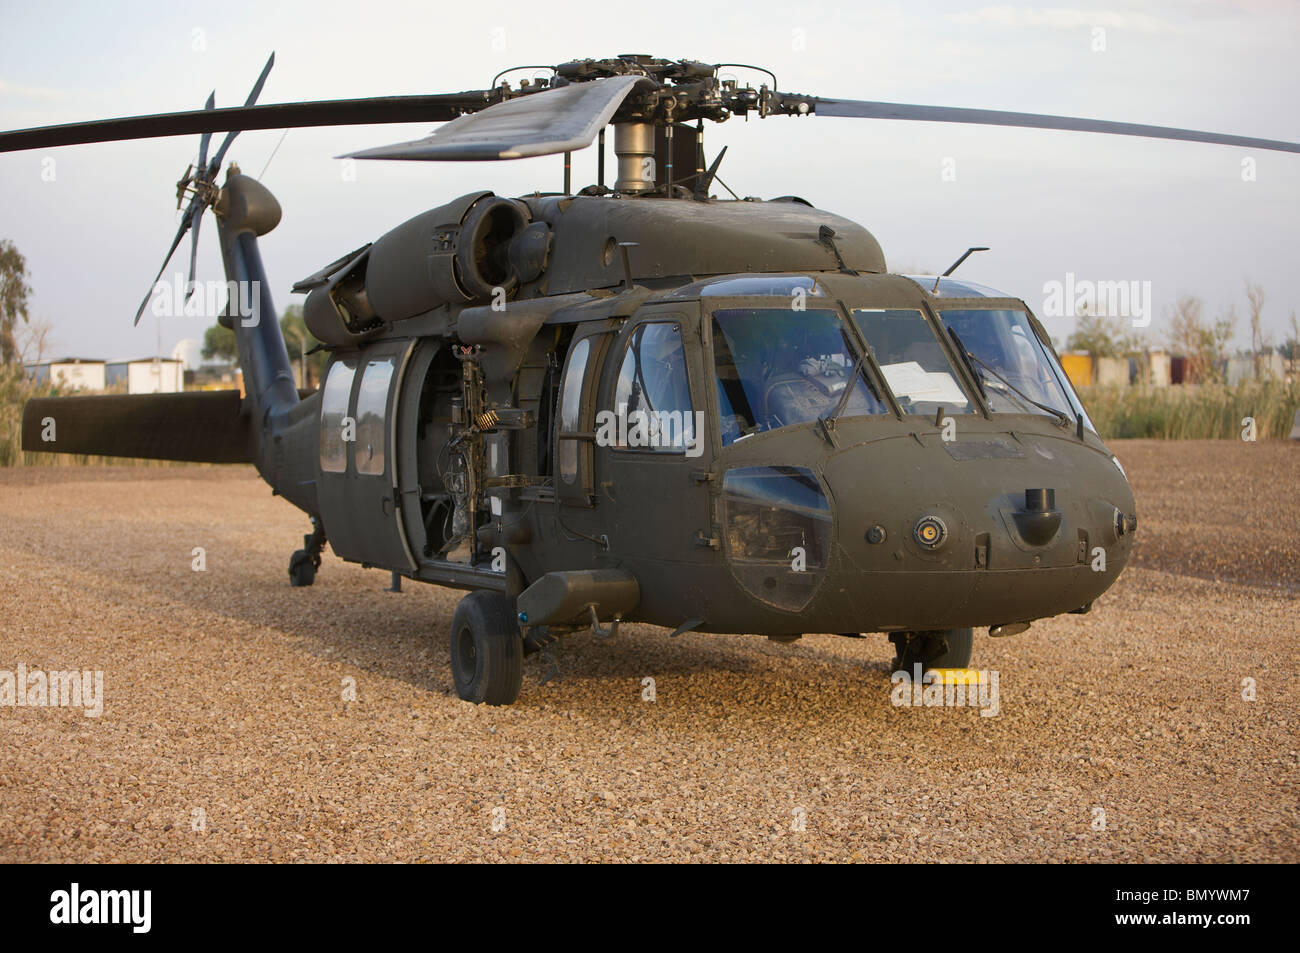 A UH-60L Black Hawk with twin M240G machine guns at the Victory Base Complex in Baghdad, Iraq. - Stock Image